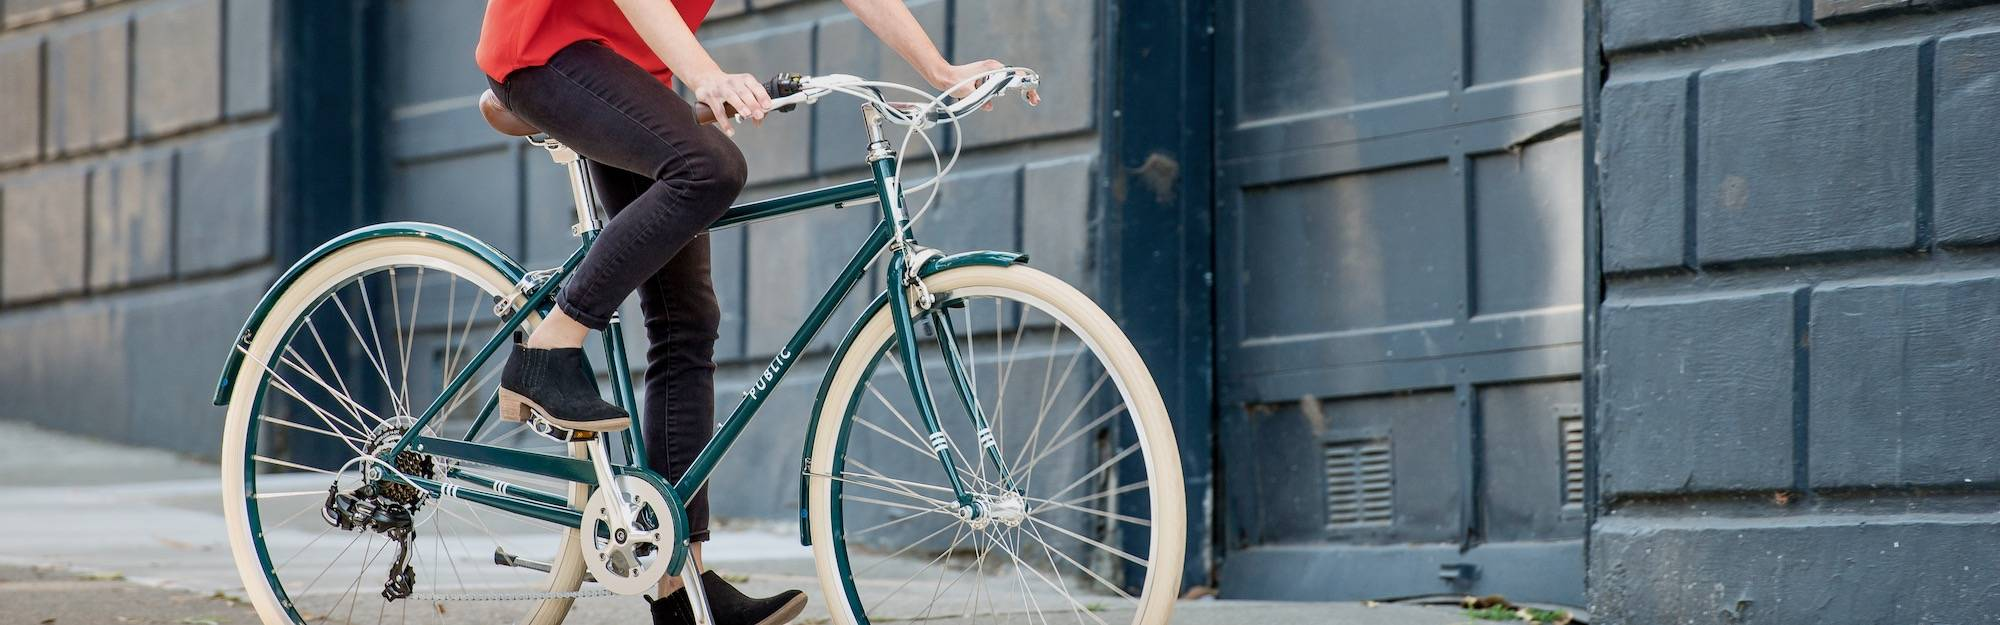 Public bikes are the ultimate urban and comfort bike.